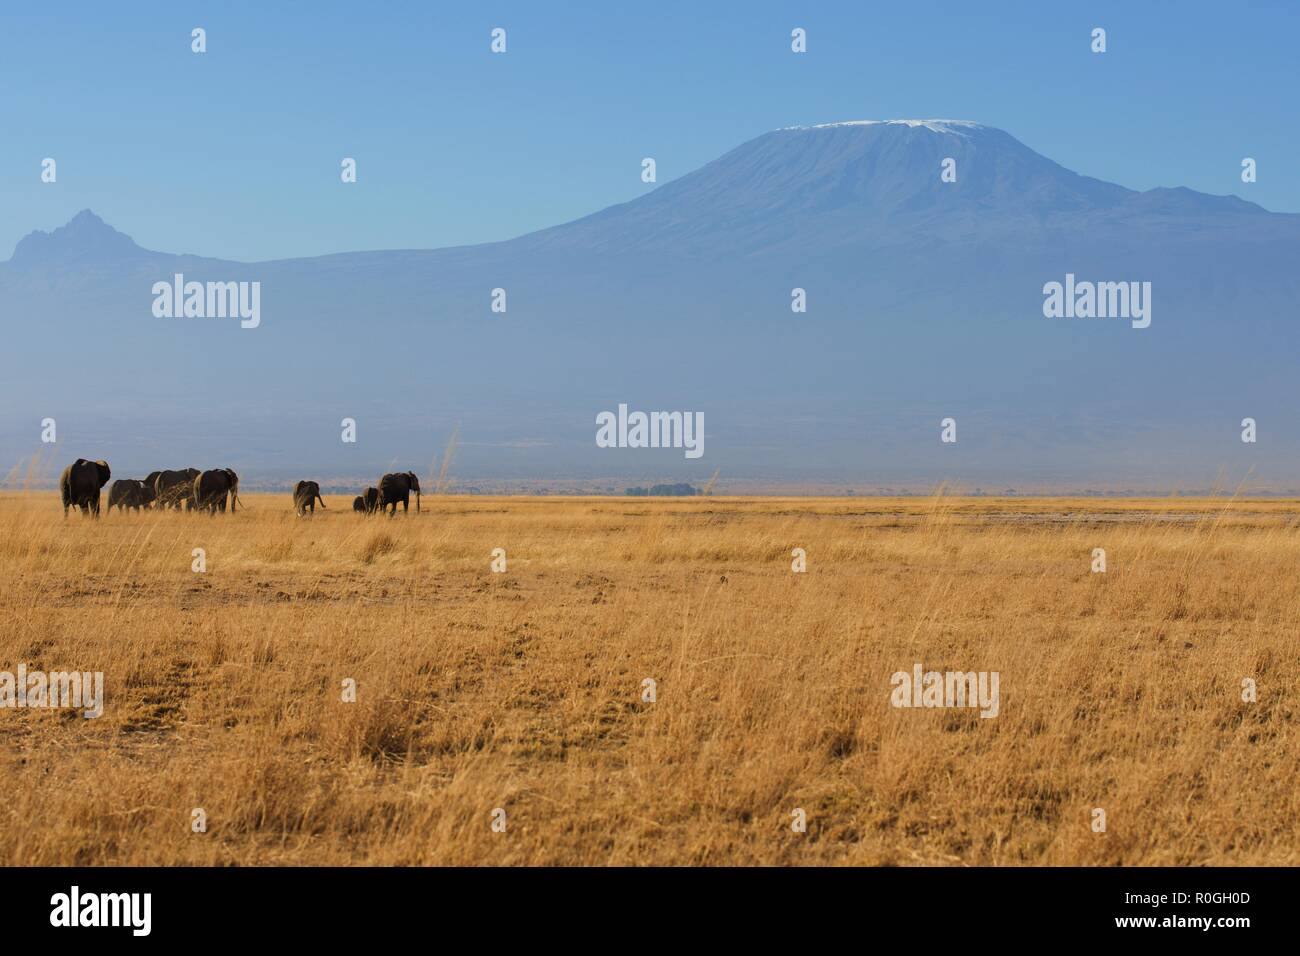 Elephant herd moving in front on Mount Kilimanjaro, view from Amboseli National Park - Stock Image